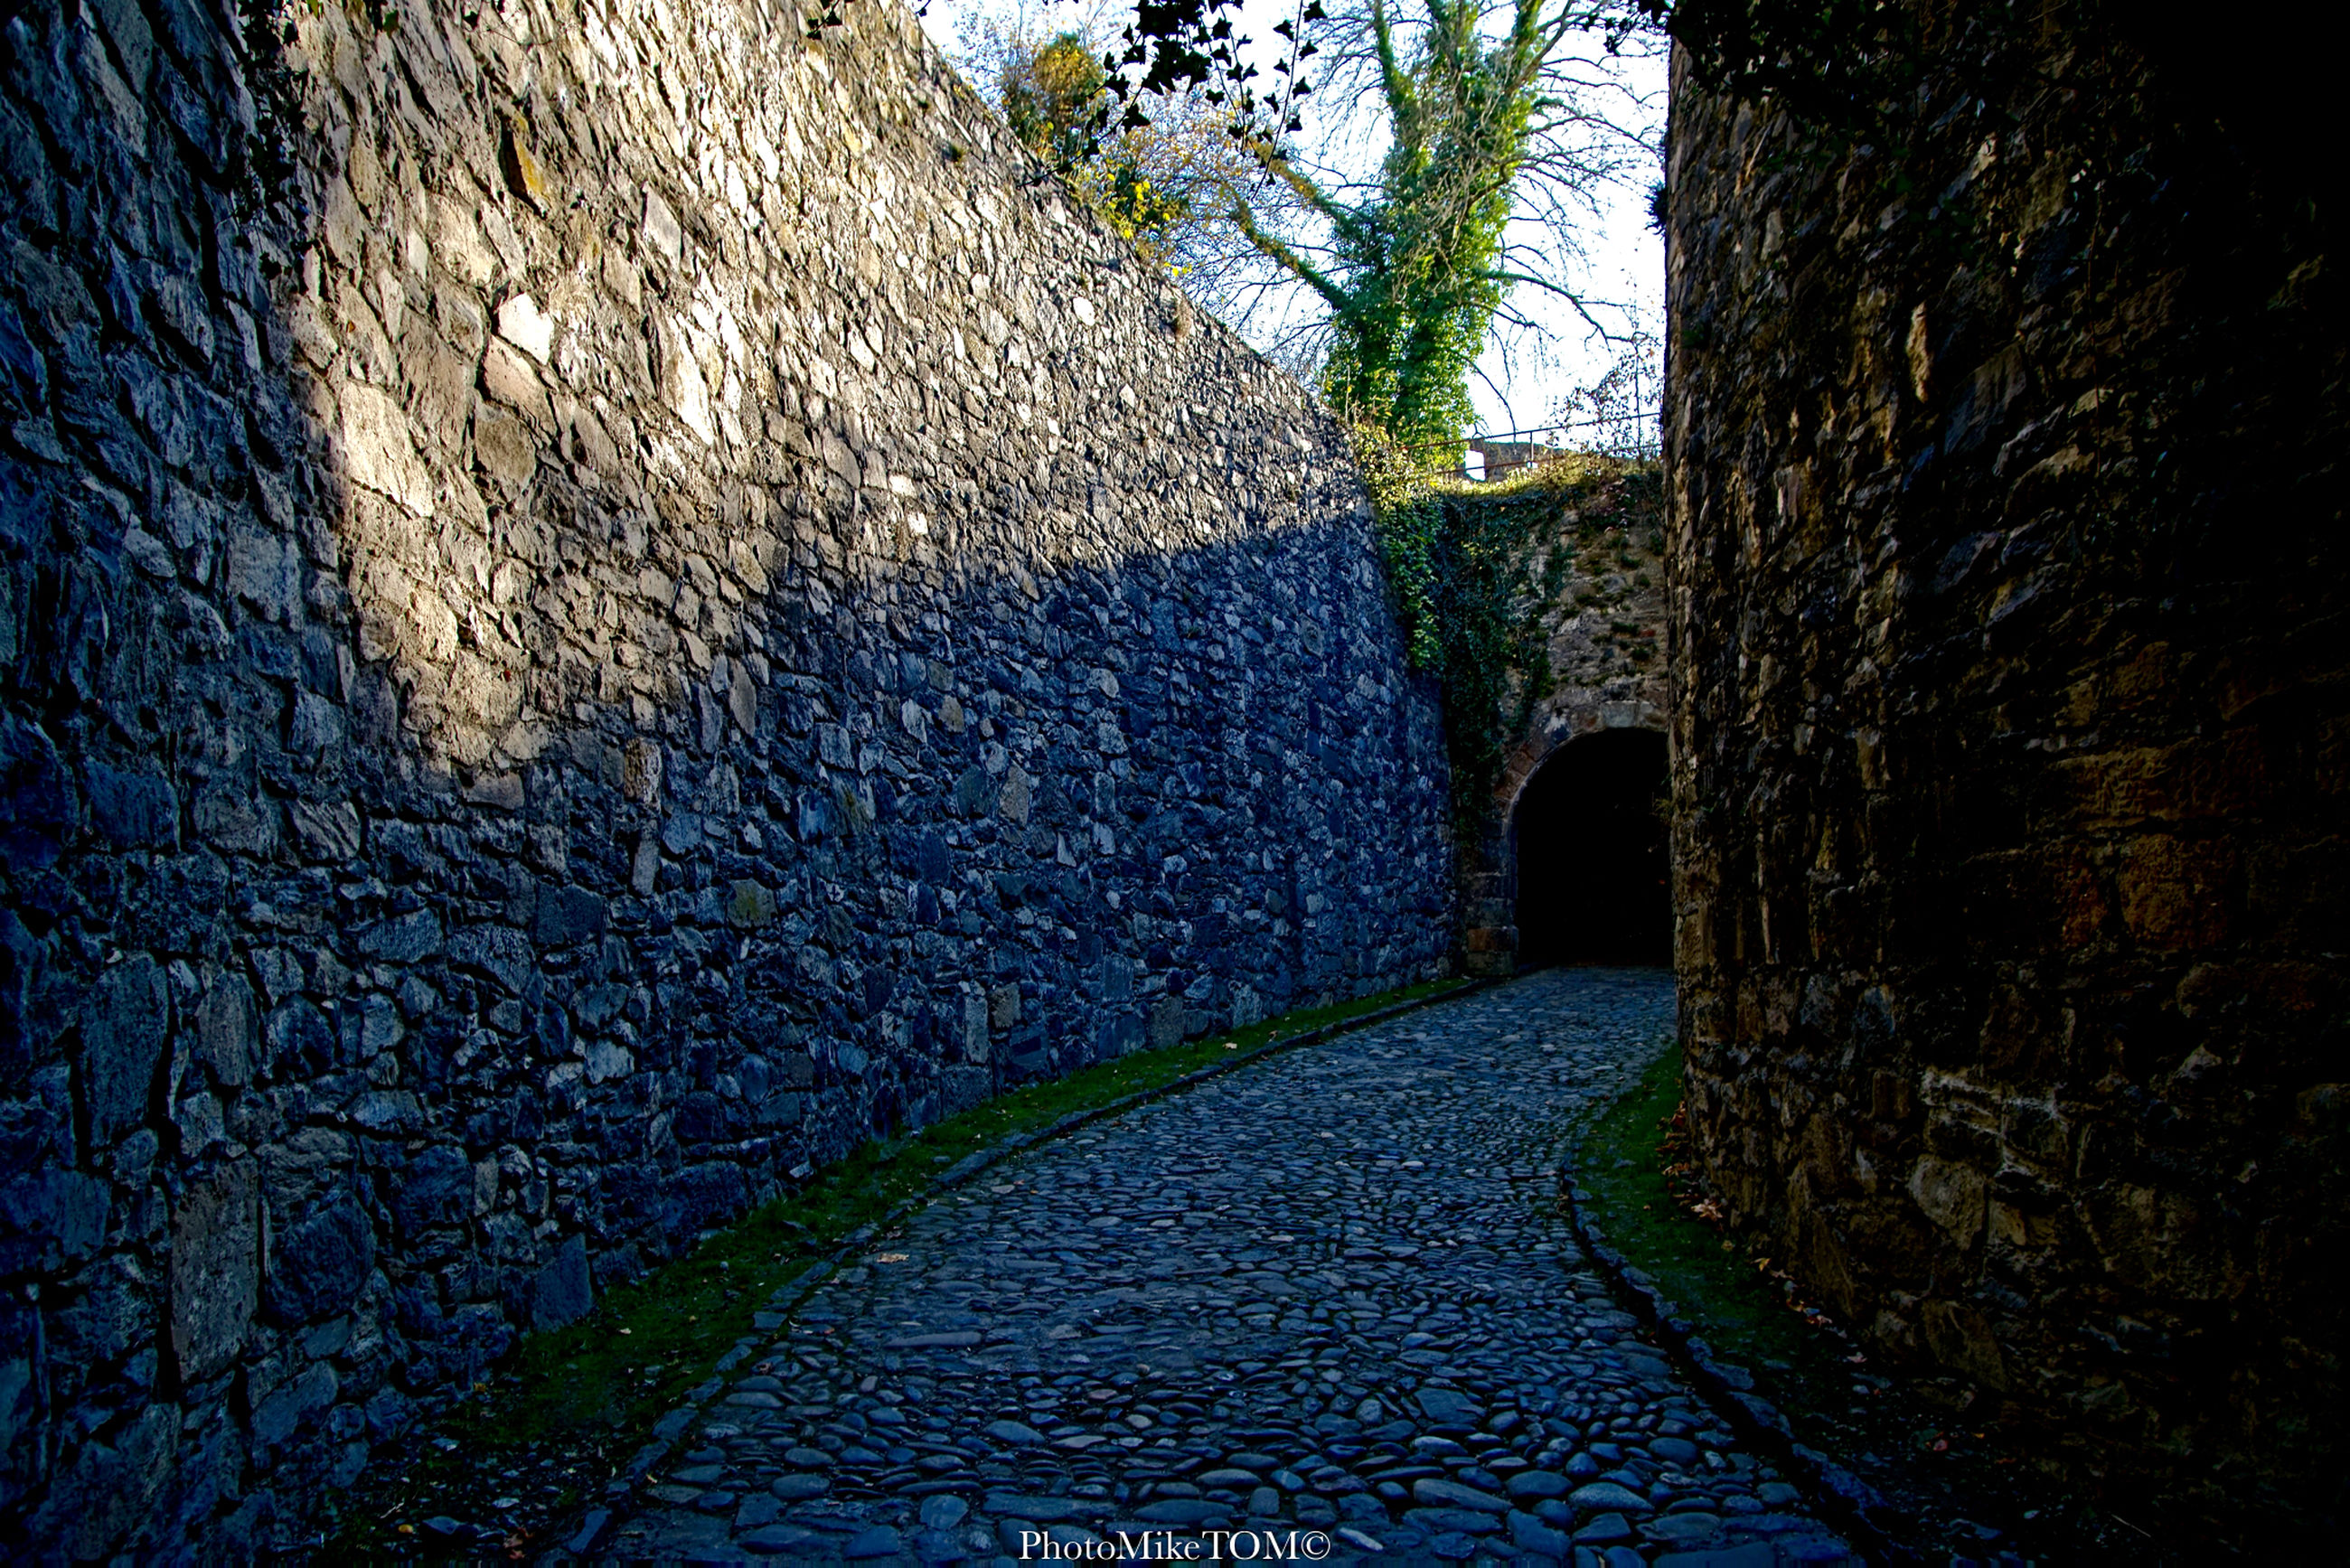 architecture, the way forward, built structure, arch, diminishing perspective, building exterior, stone wall, wall - building feature, cobblestone, walkway, wall, footpath, day, narrow, vanishing point, no people, brick wall, sunlight, stone material, textured